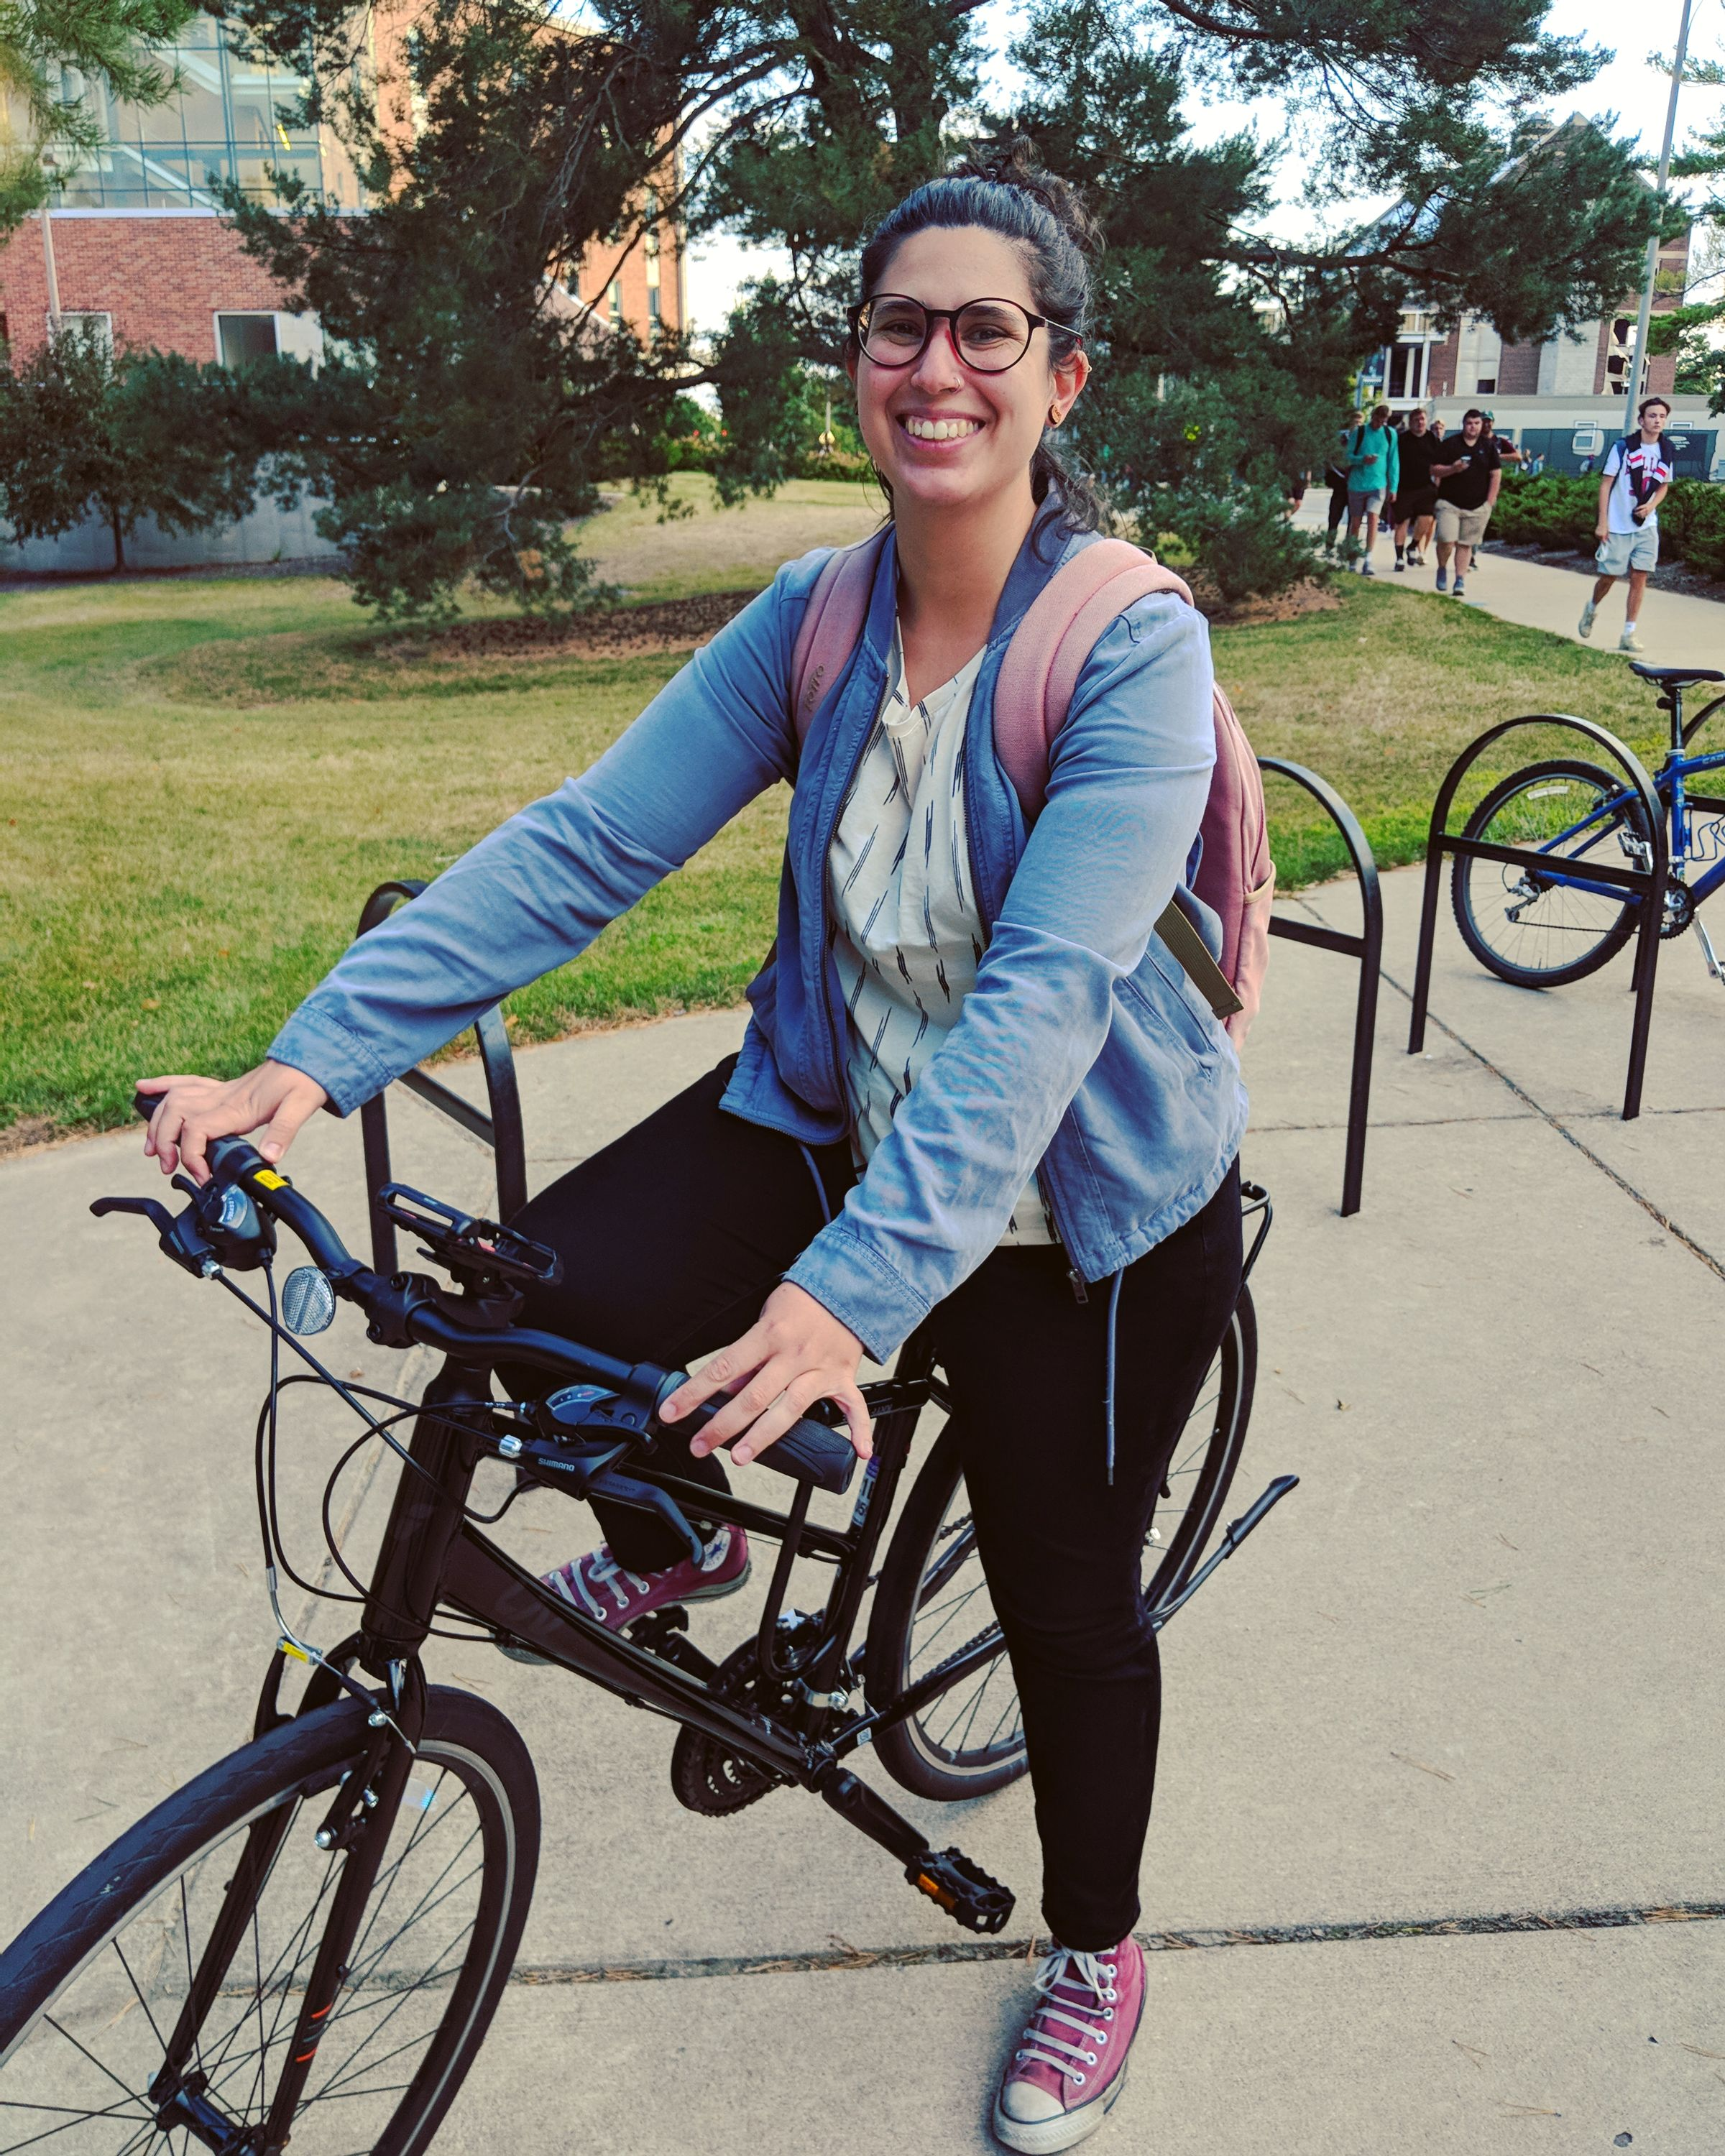 Sofia Abreu on her bike - first day of class for PhD!